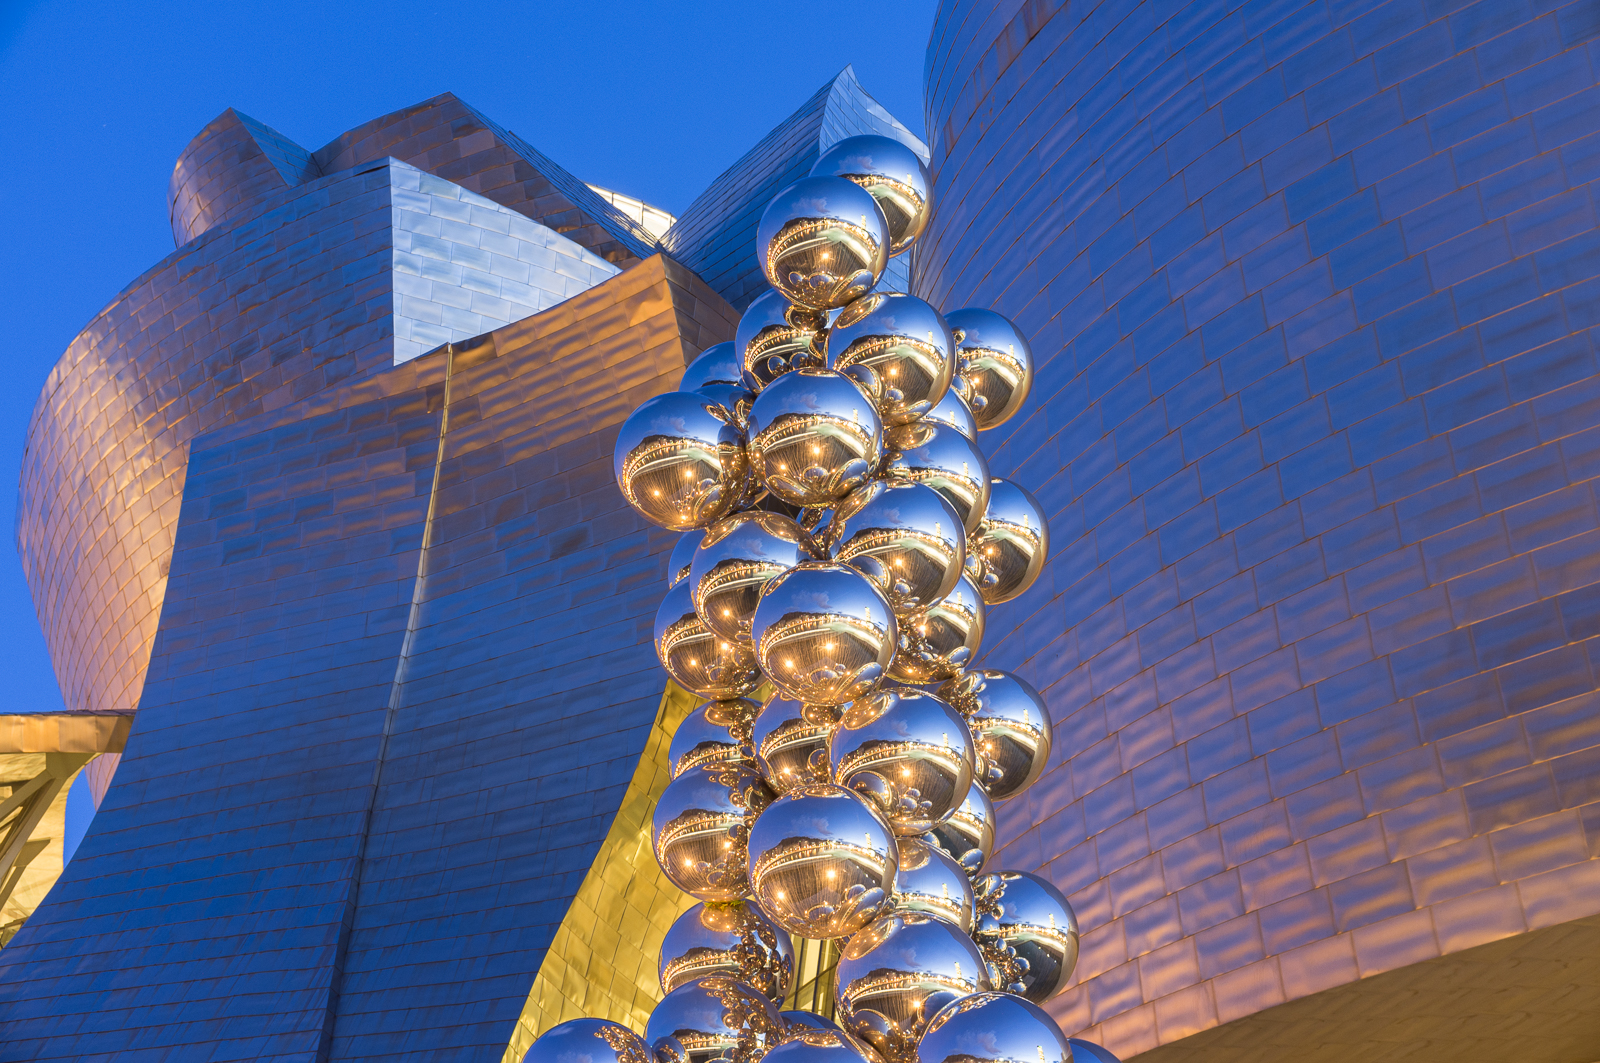 Guggenheim Bilbao and Tall Tress and The Eye by Anish Kapoor